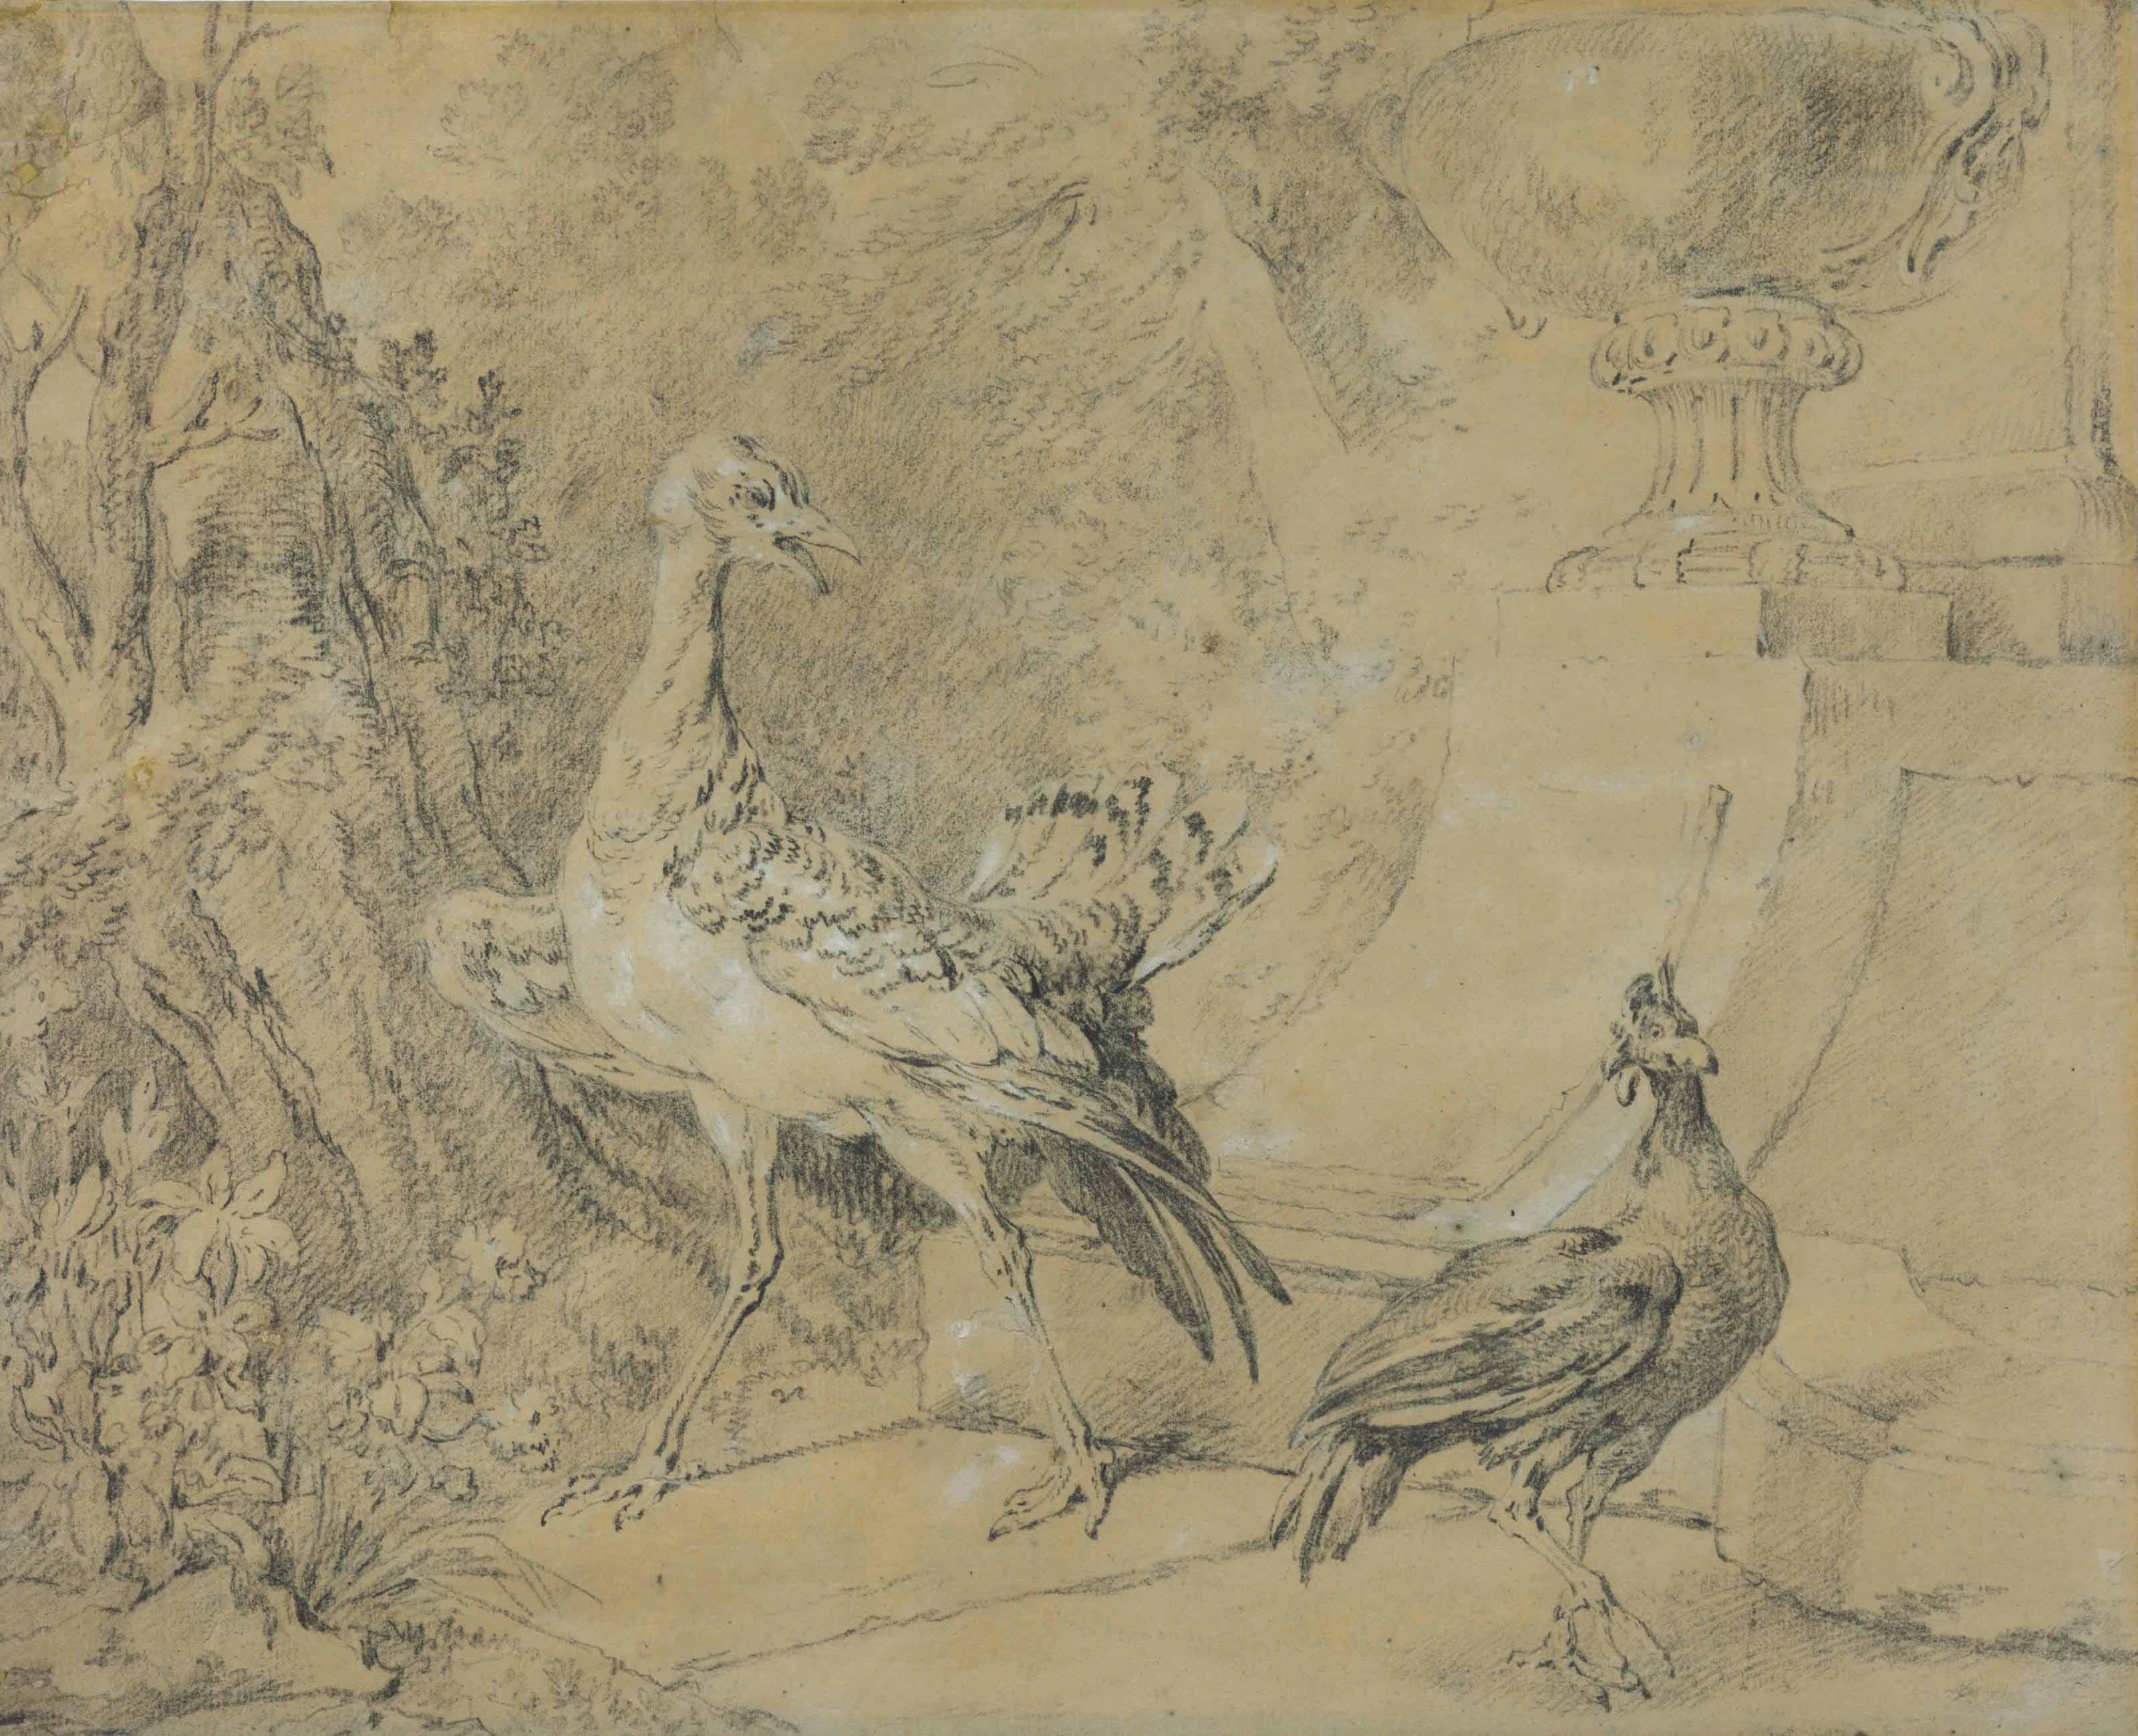 Two birds in a landscape